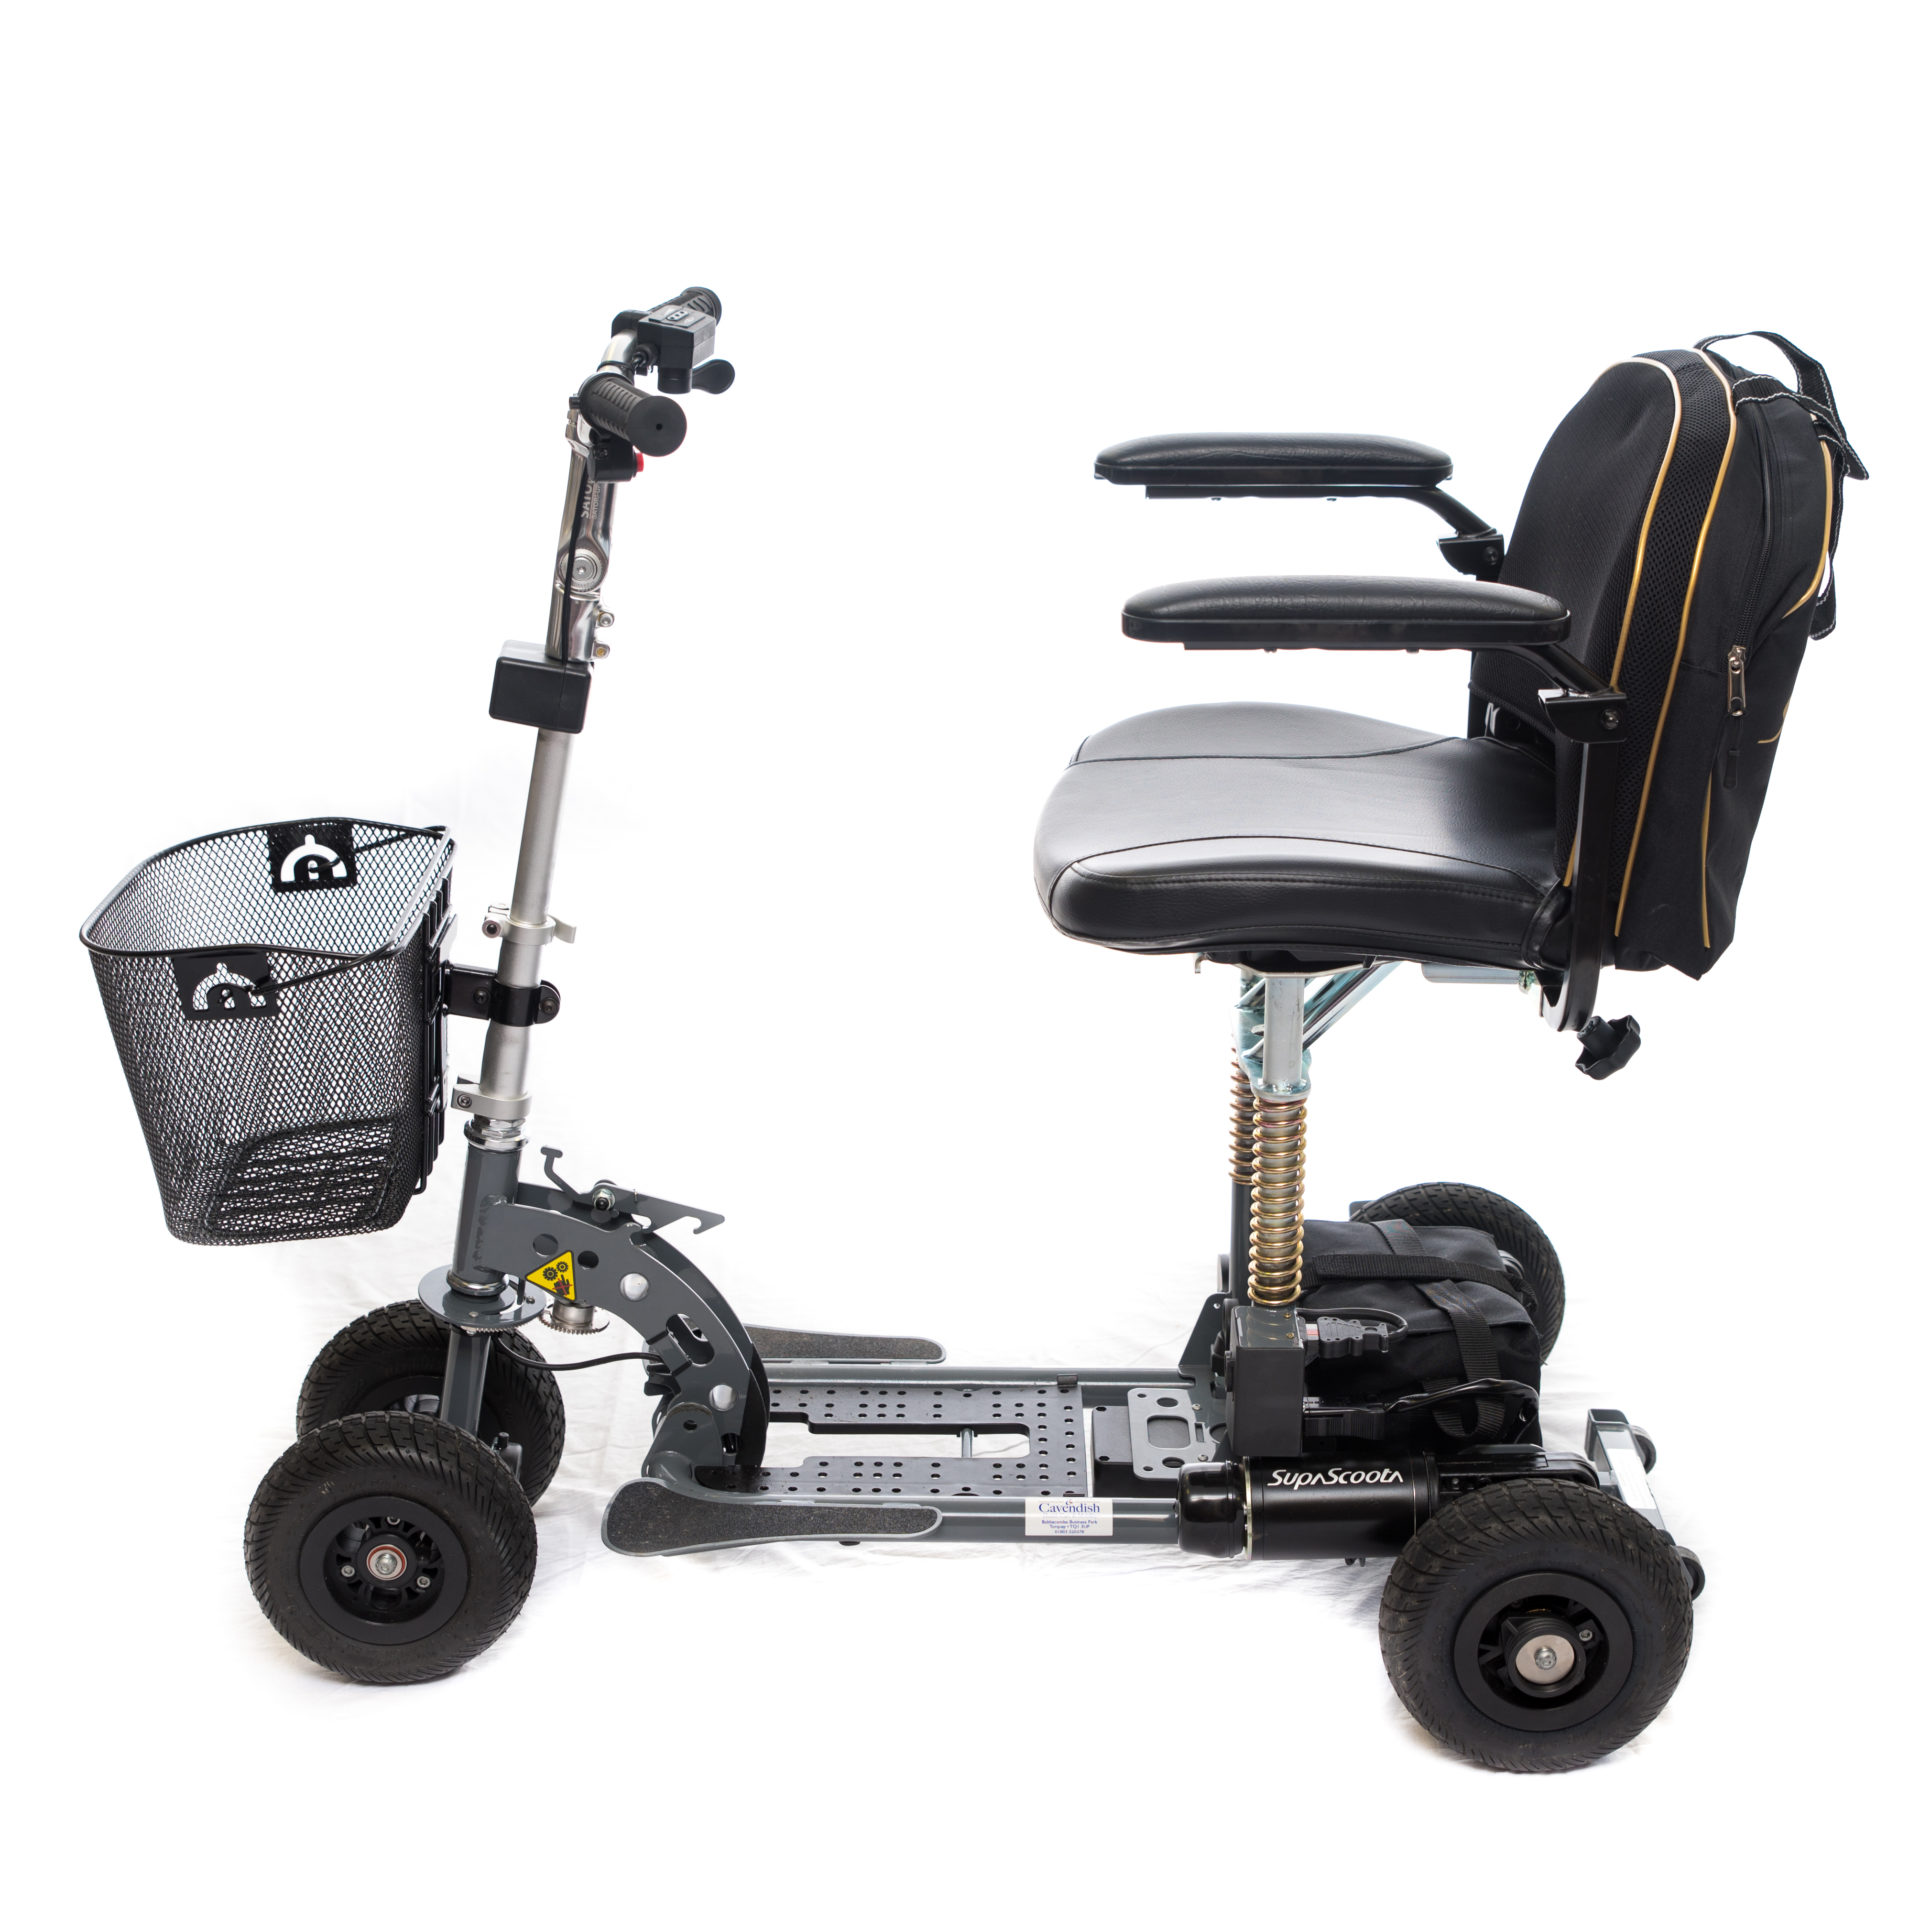 SupaScoota Sprint HD02 Mobility Scooter